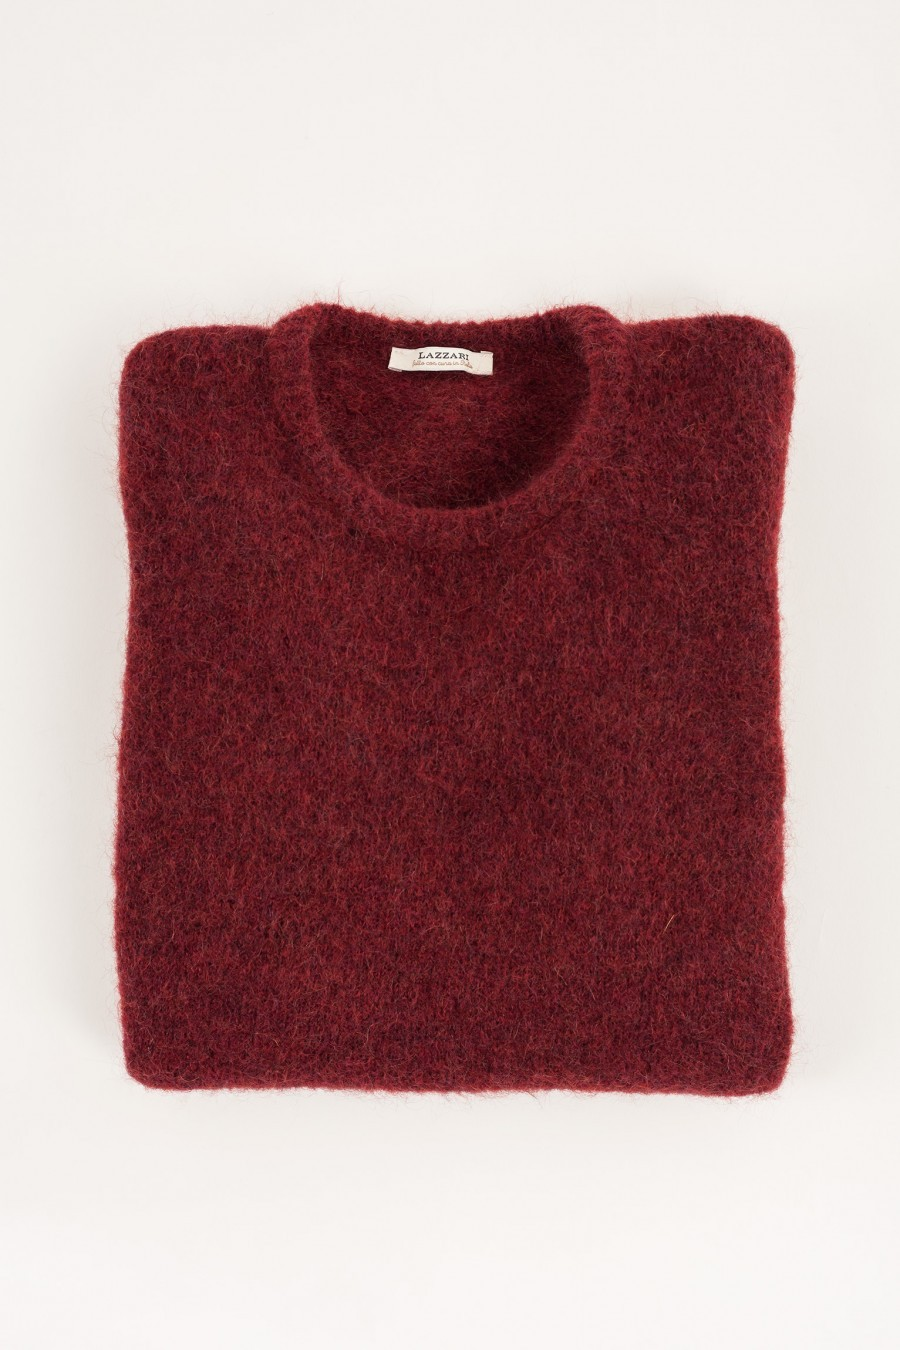 Girocollo in mohair bordeaux